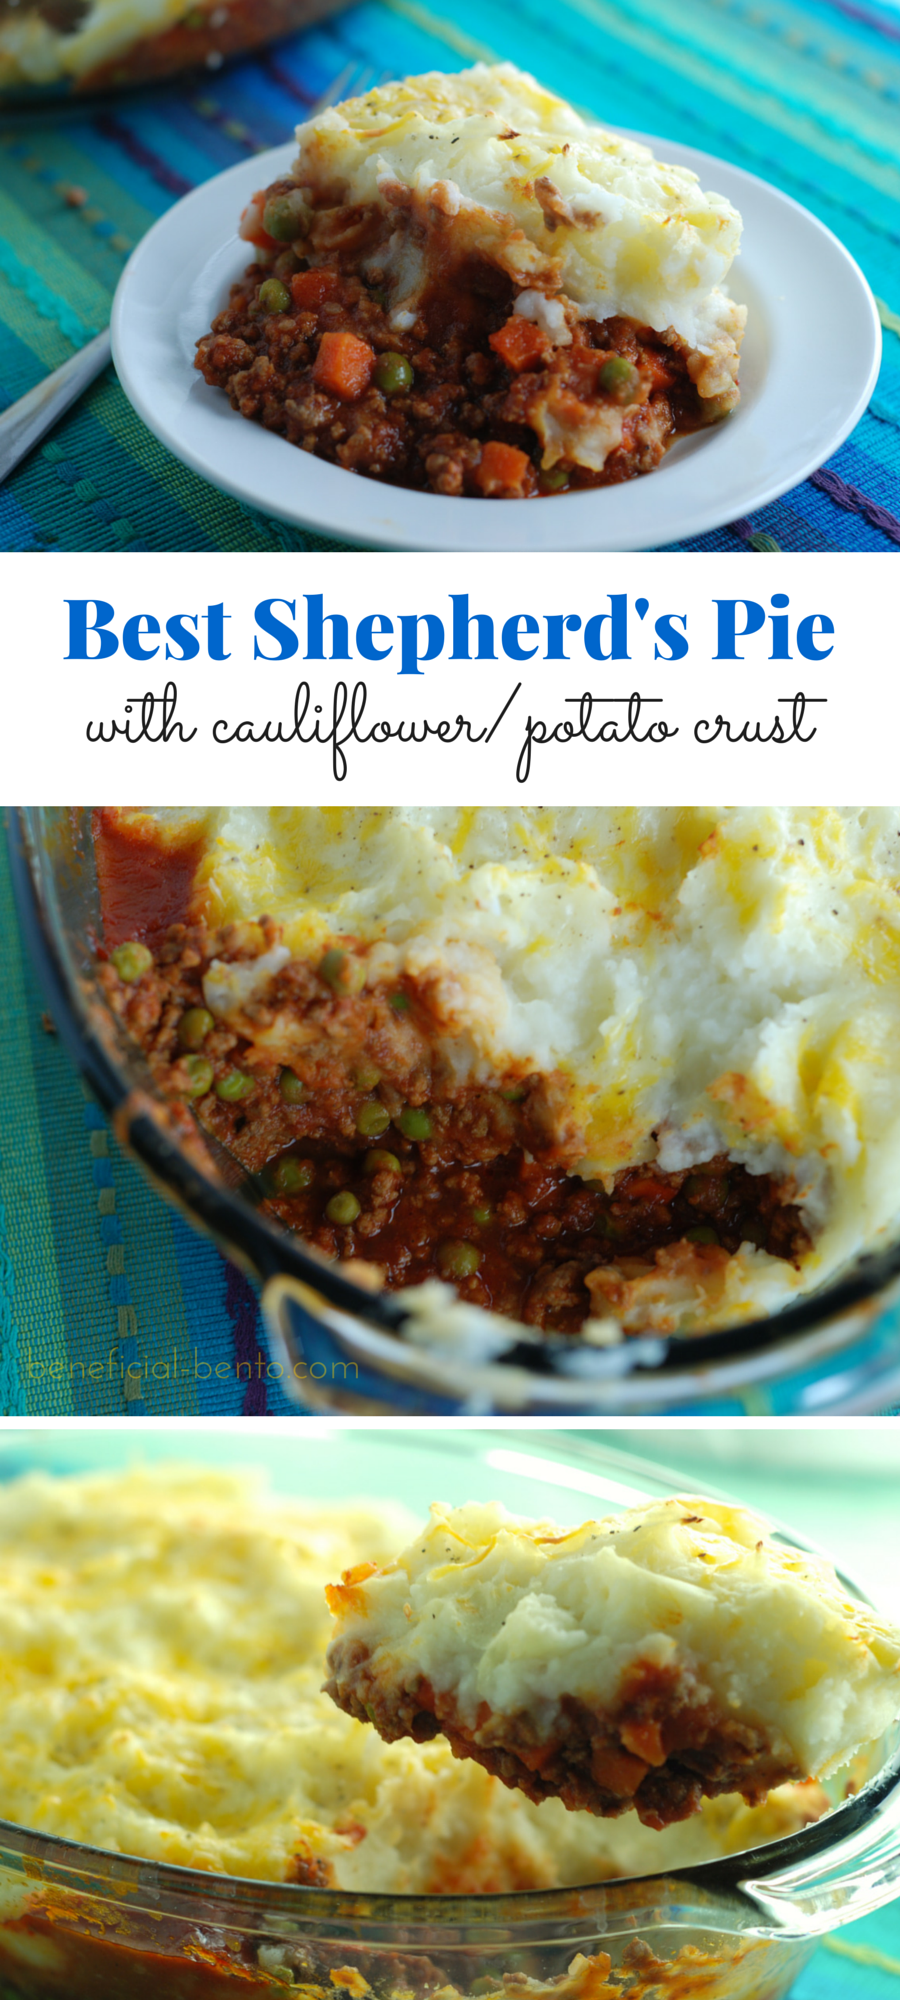 Best Shepherd's Pie Recipe with Cauliflower/Potato Crust ...